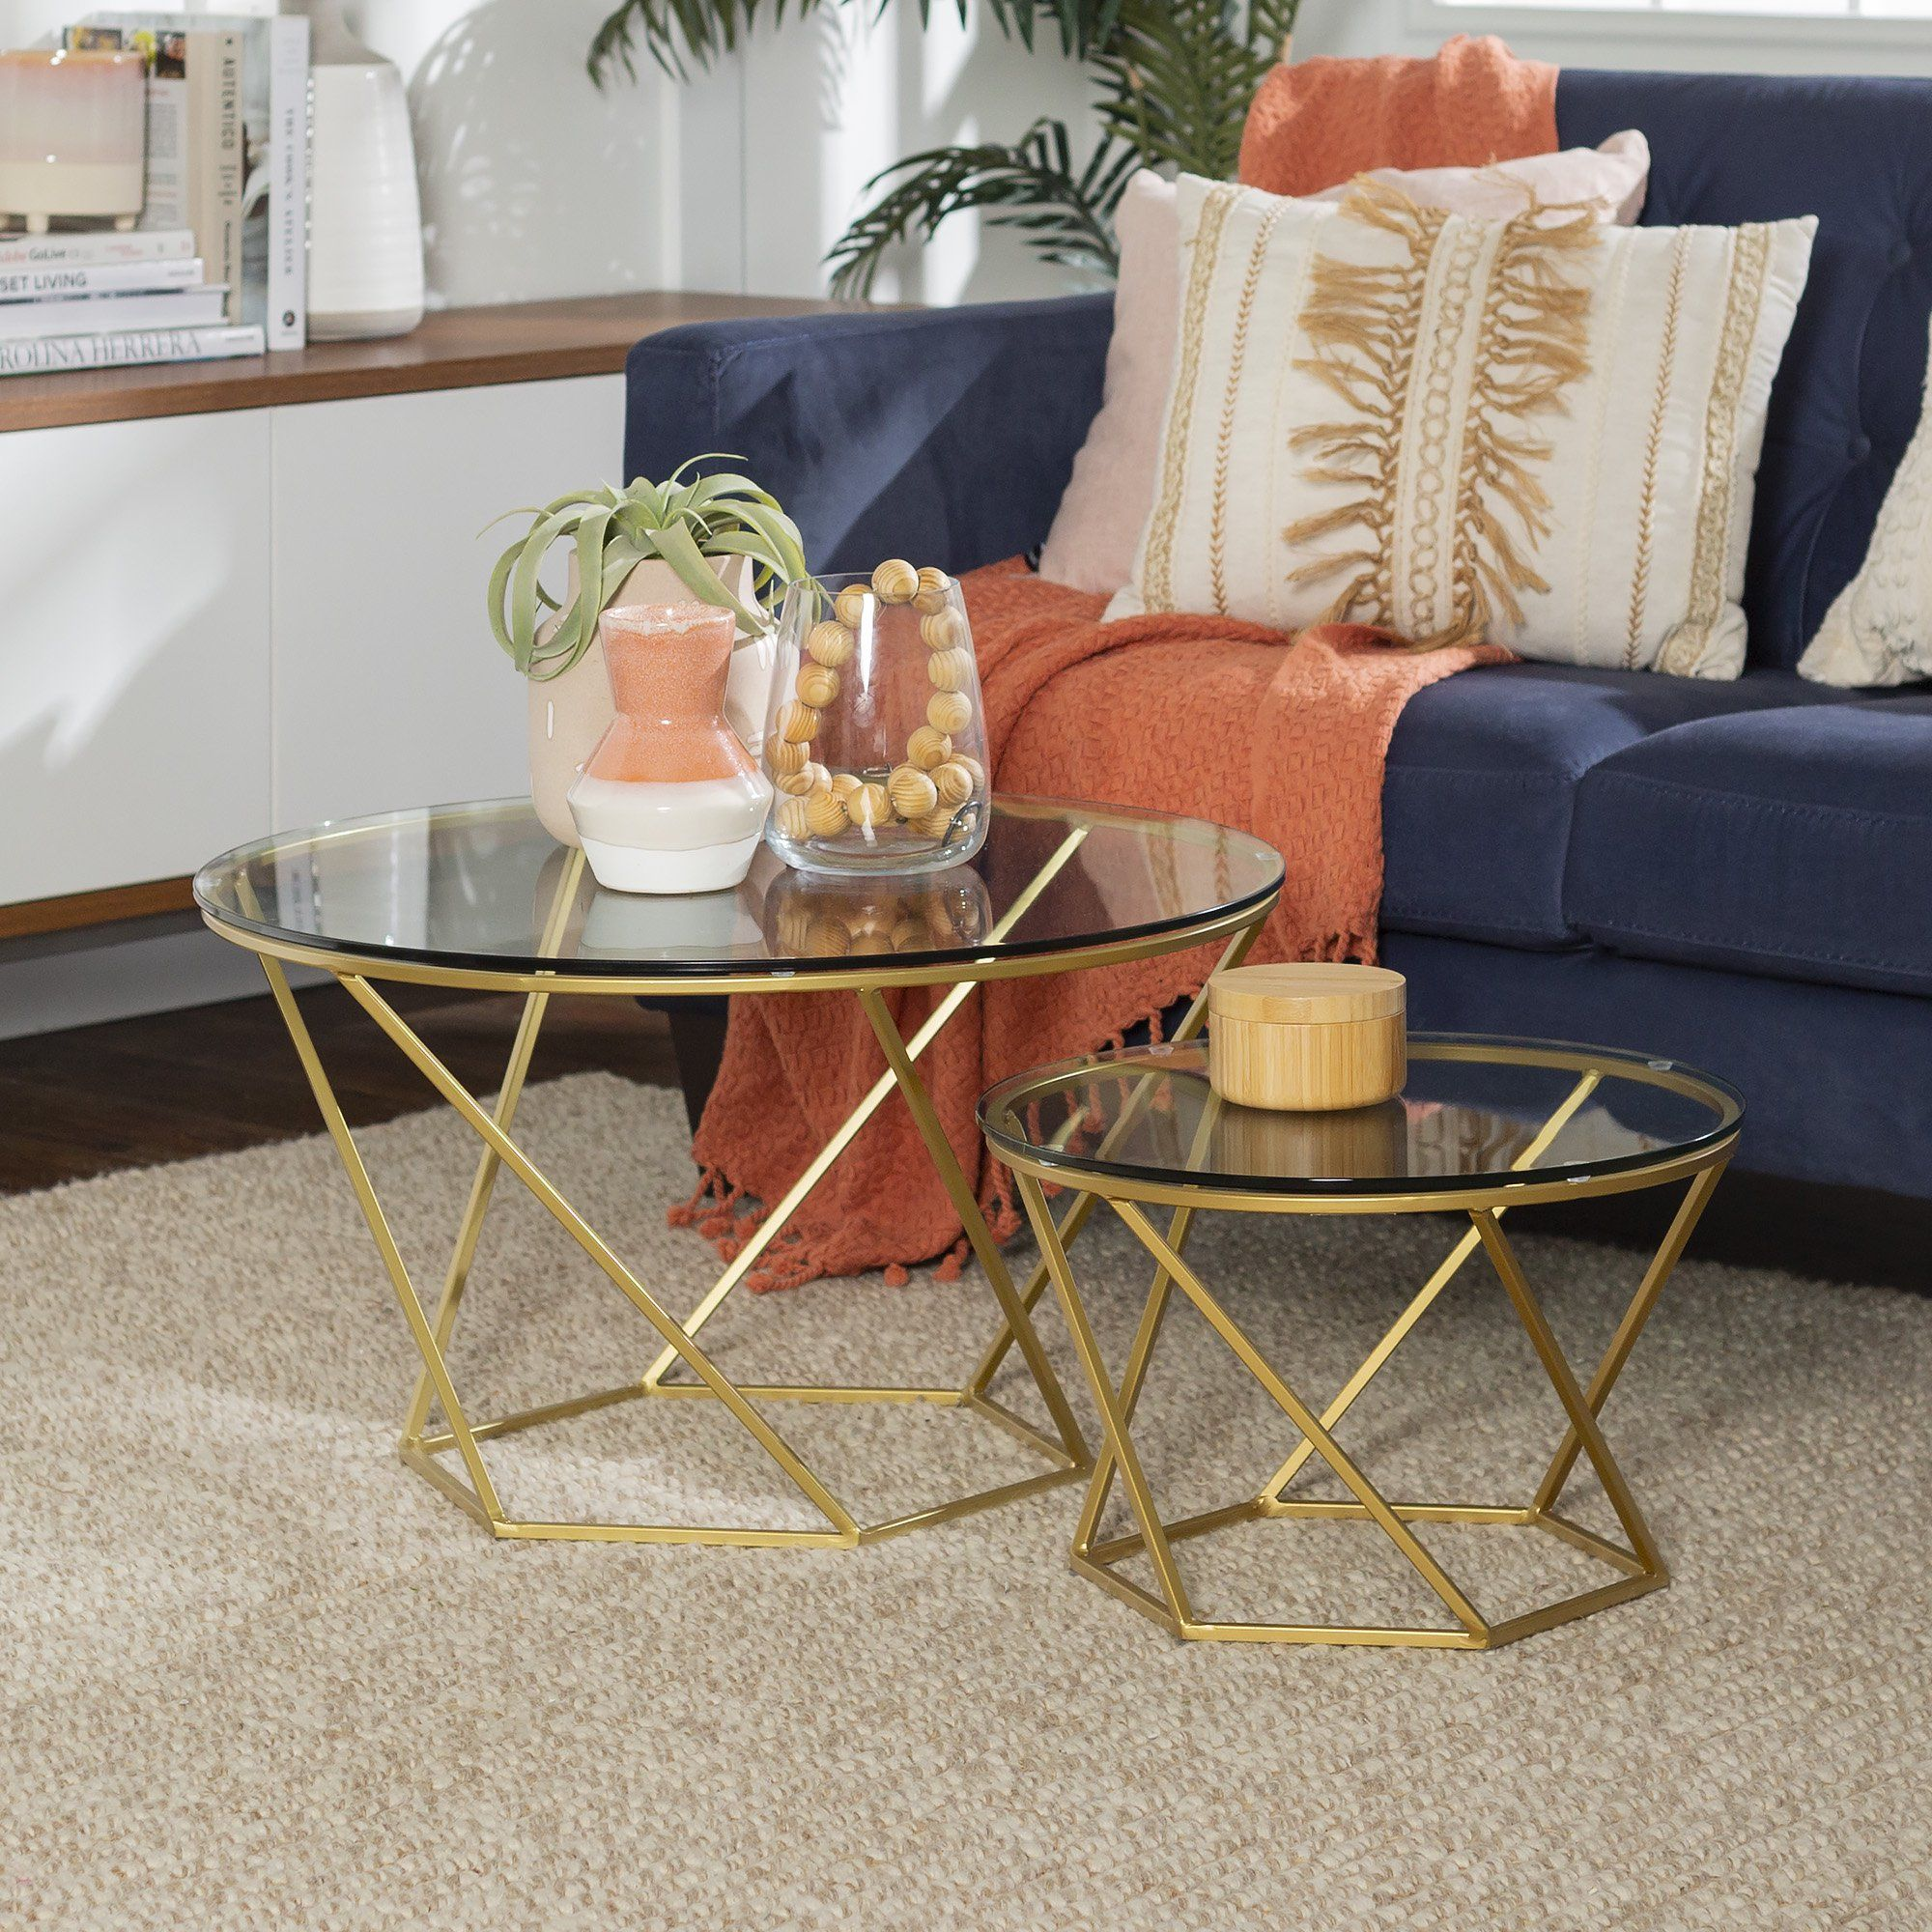 Eloise Geometric Glass And Gold Nesting End Tables By Ember Interiors Walmart Com Nesting End Tables Glass Coffee Tables Living Room Living Room Coffee Table [ 2000 x 2000 Pixel ]